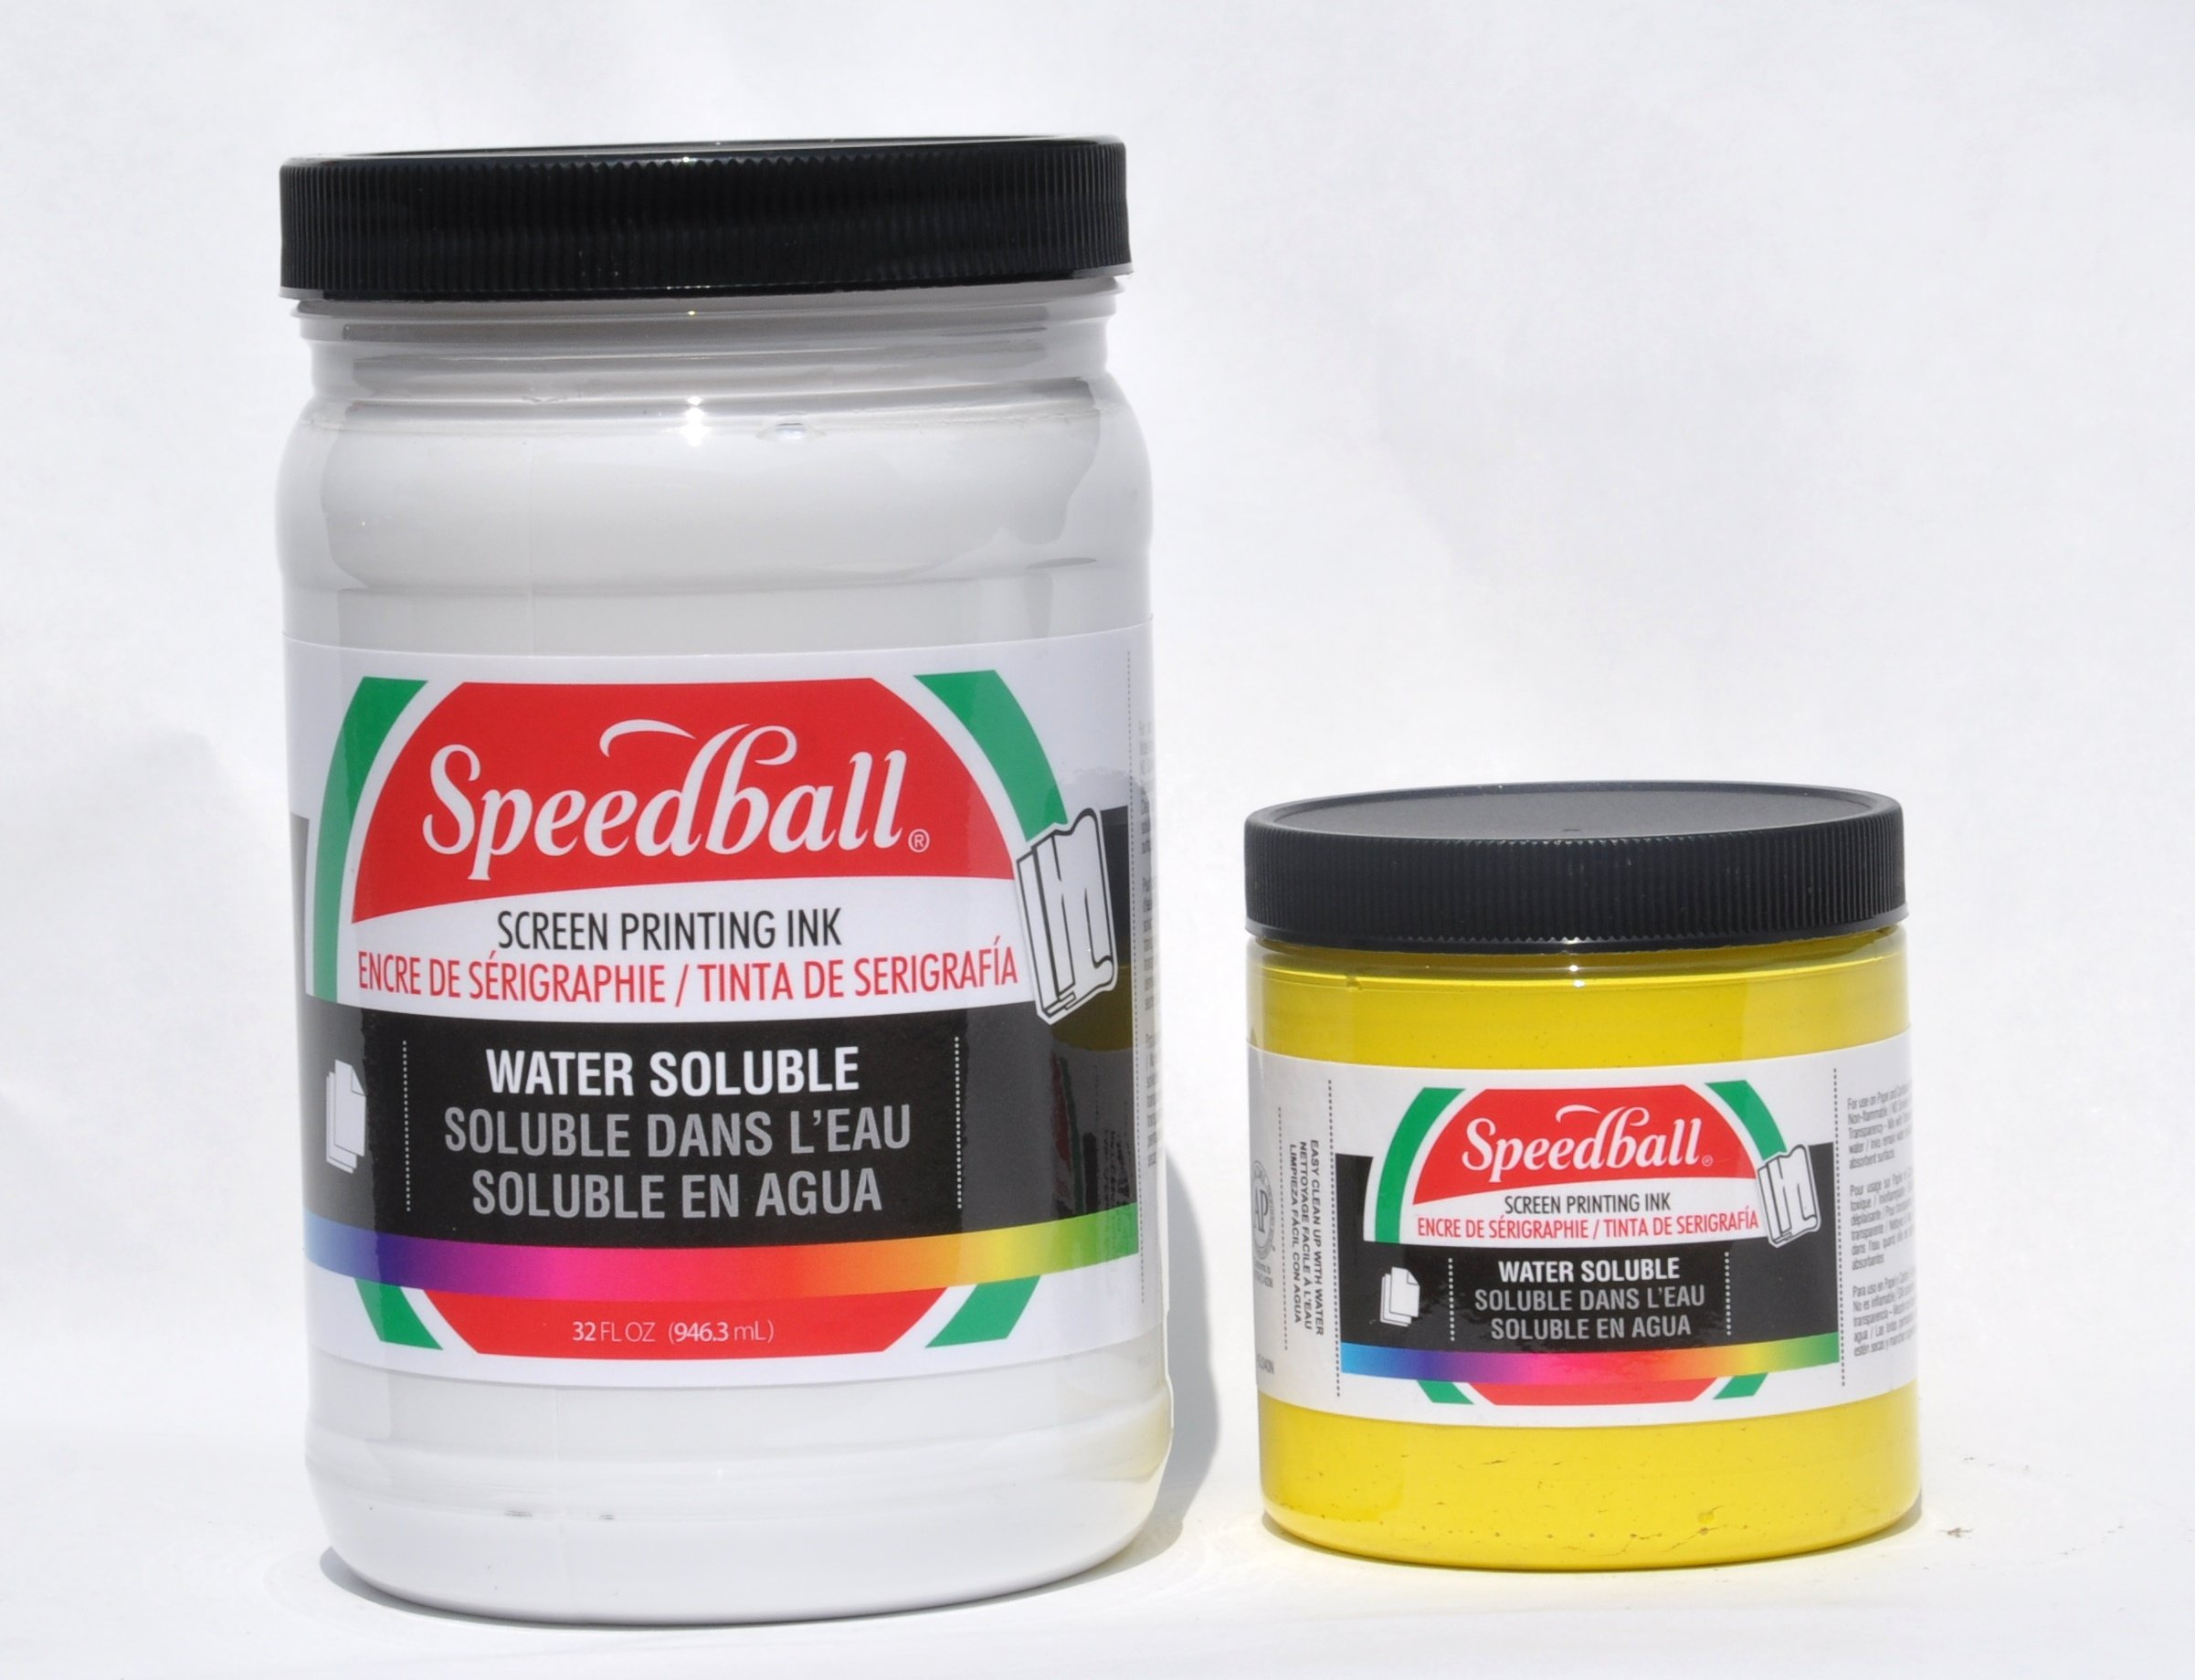 Speedball Non-Toxic Non-Flammable Water Soluble Screen Printing Ink, 1 qt Jar, Black